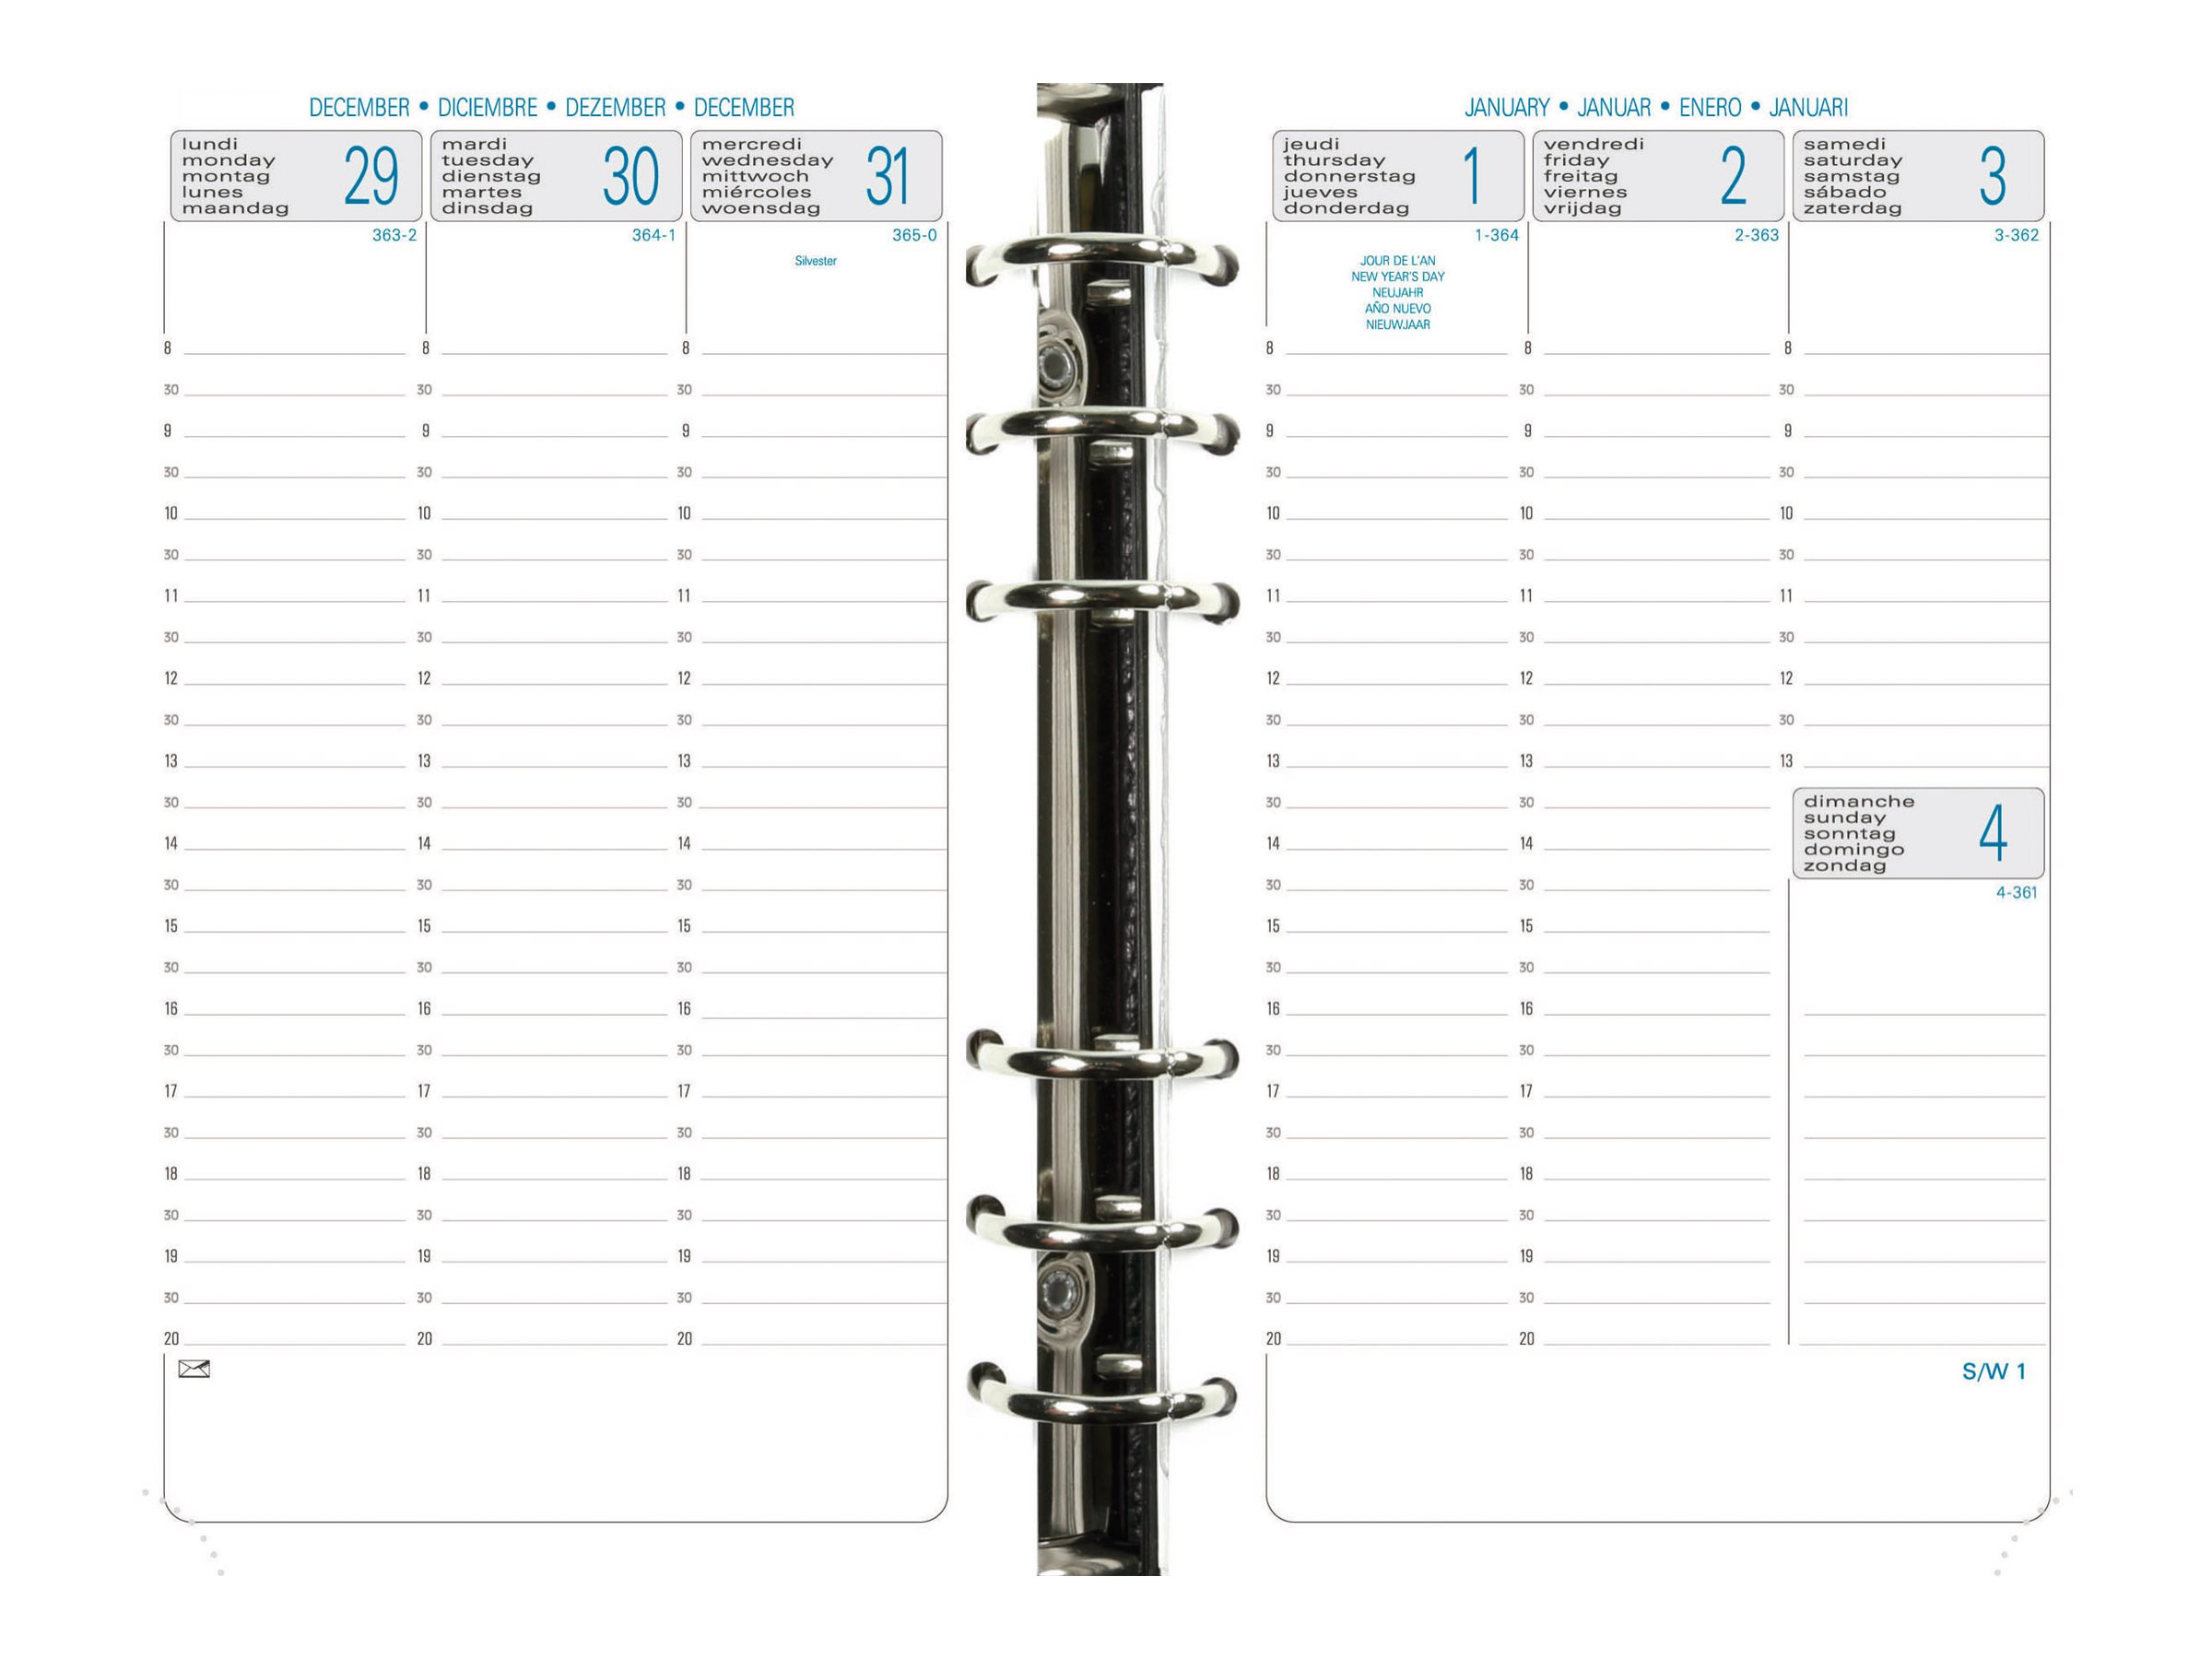 Exacompta Exatime 17 - recharge pour planning annuel - hebdomadaire - 105 x 172 mm